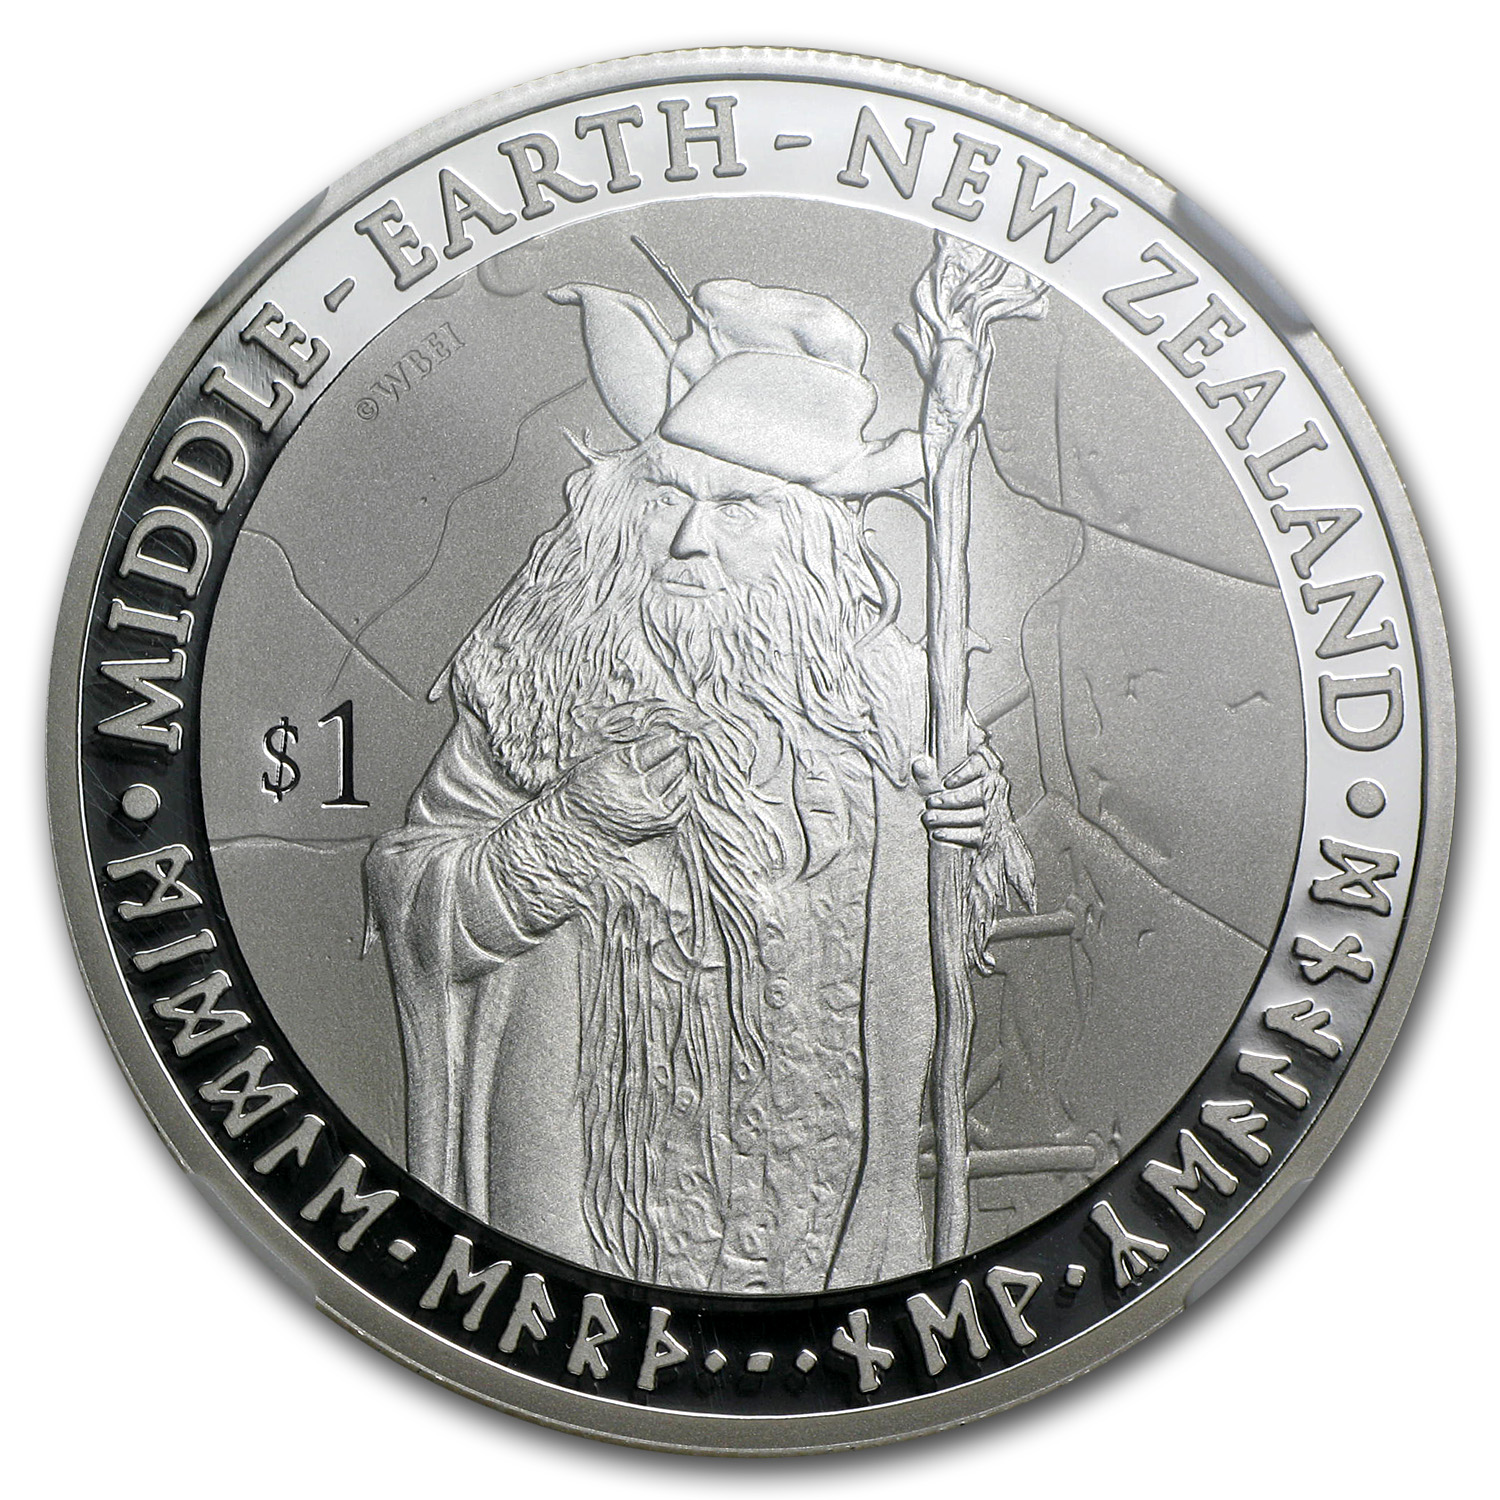 2012 New Zealand 1 oz Silver $1 Radagast The Brown PF-70 NGC